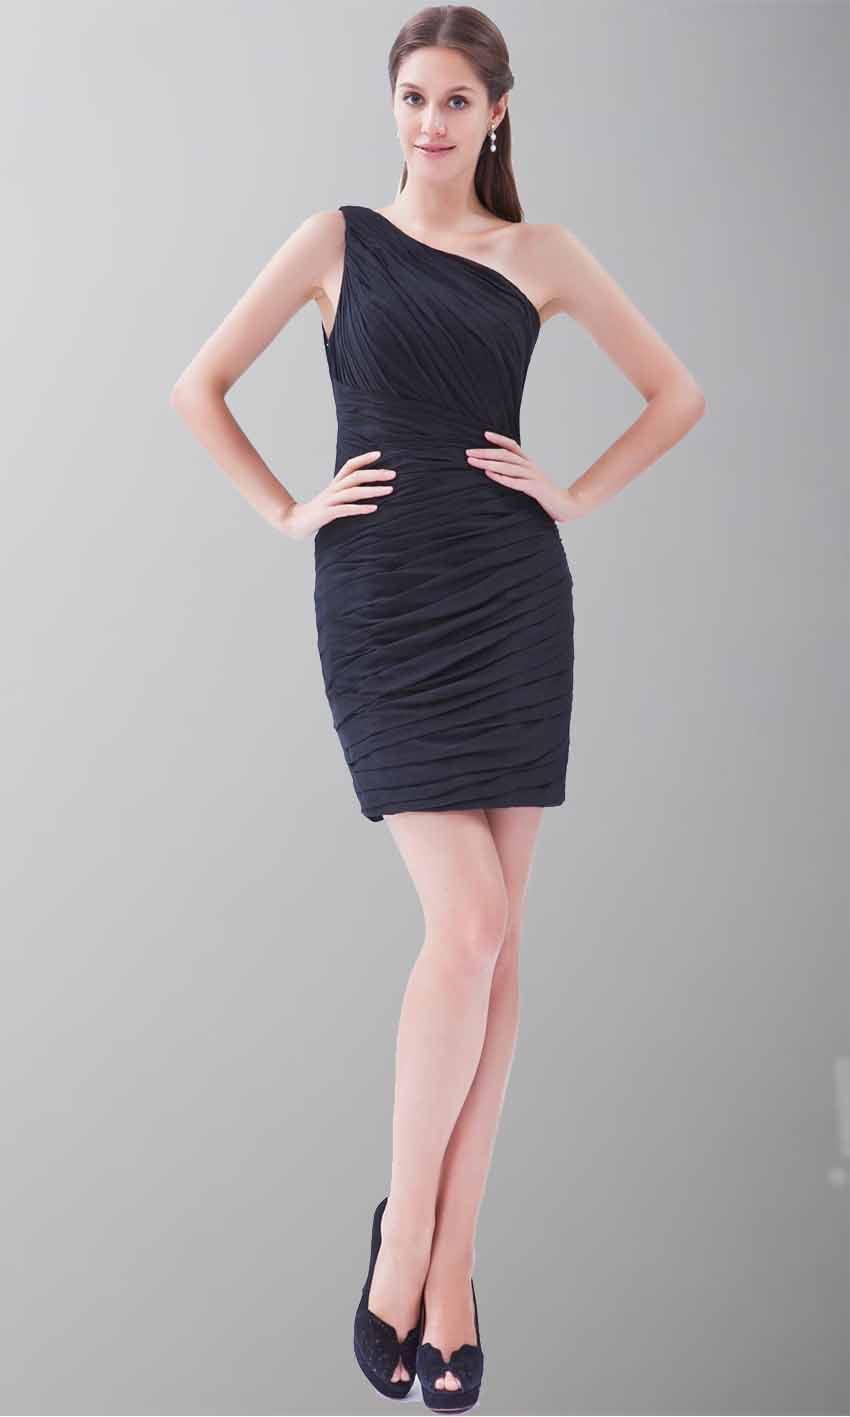 One Shoulder Pleated Shift Little Black Dress KSP245 [KSP245] - £84.00 : Cheap Prom Dresses Uk, Bridesmaid Dresses, 2014 Prom & Evening Dresses, Look for cheap elegant prom dresses 2014, cocktail gowns, or dresses for special occasions? kissprom.co.uk offers various bridesmaid dresses, evening dress, free shipping to UK etc.